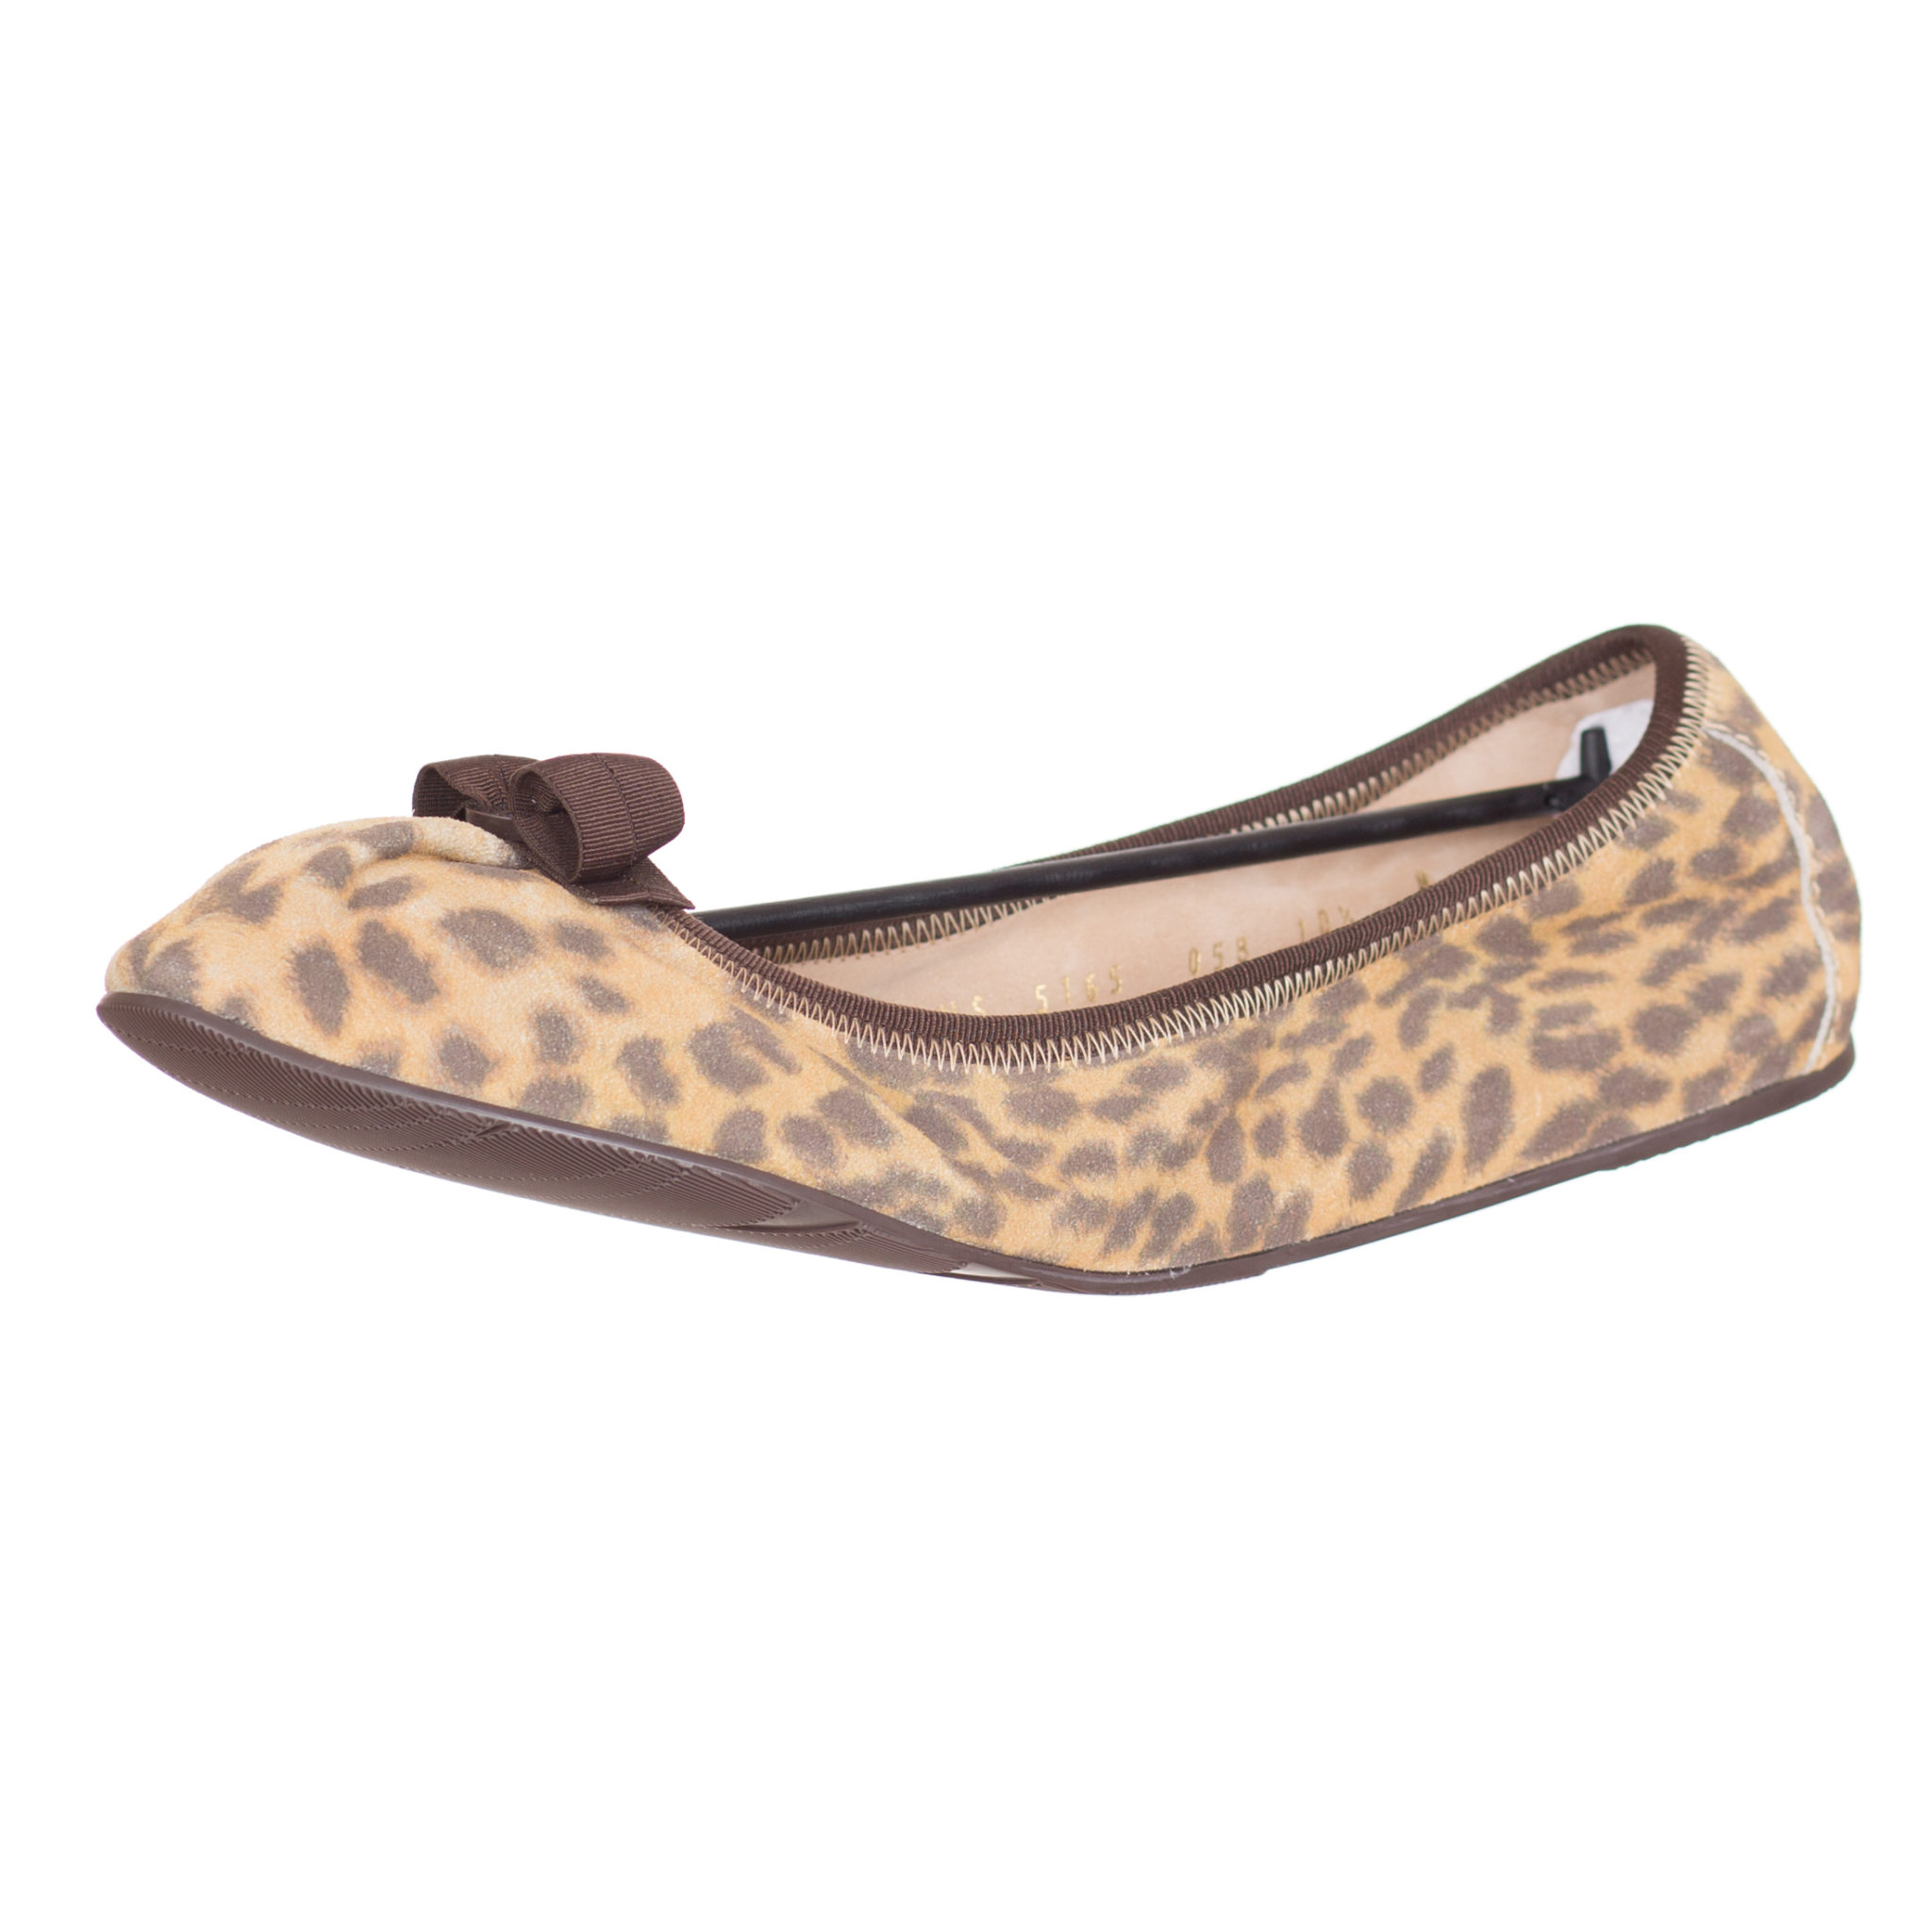 bed0678f9 Salvatore Ferragamo Women's 'My Joy' Leopard Suede Bow Ballerina Flats Shoes